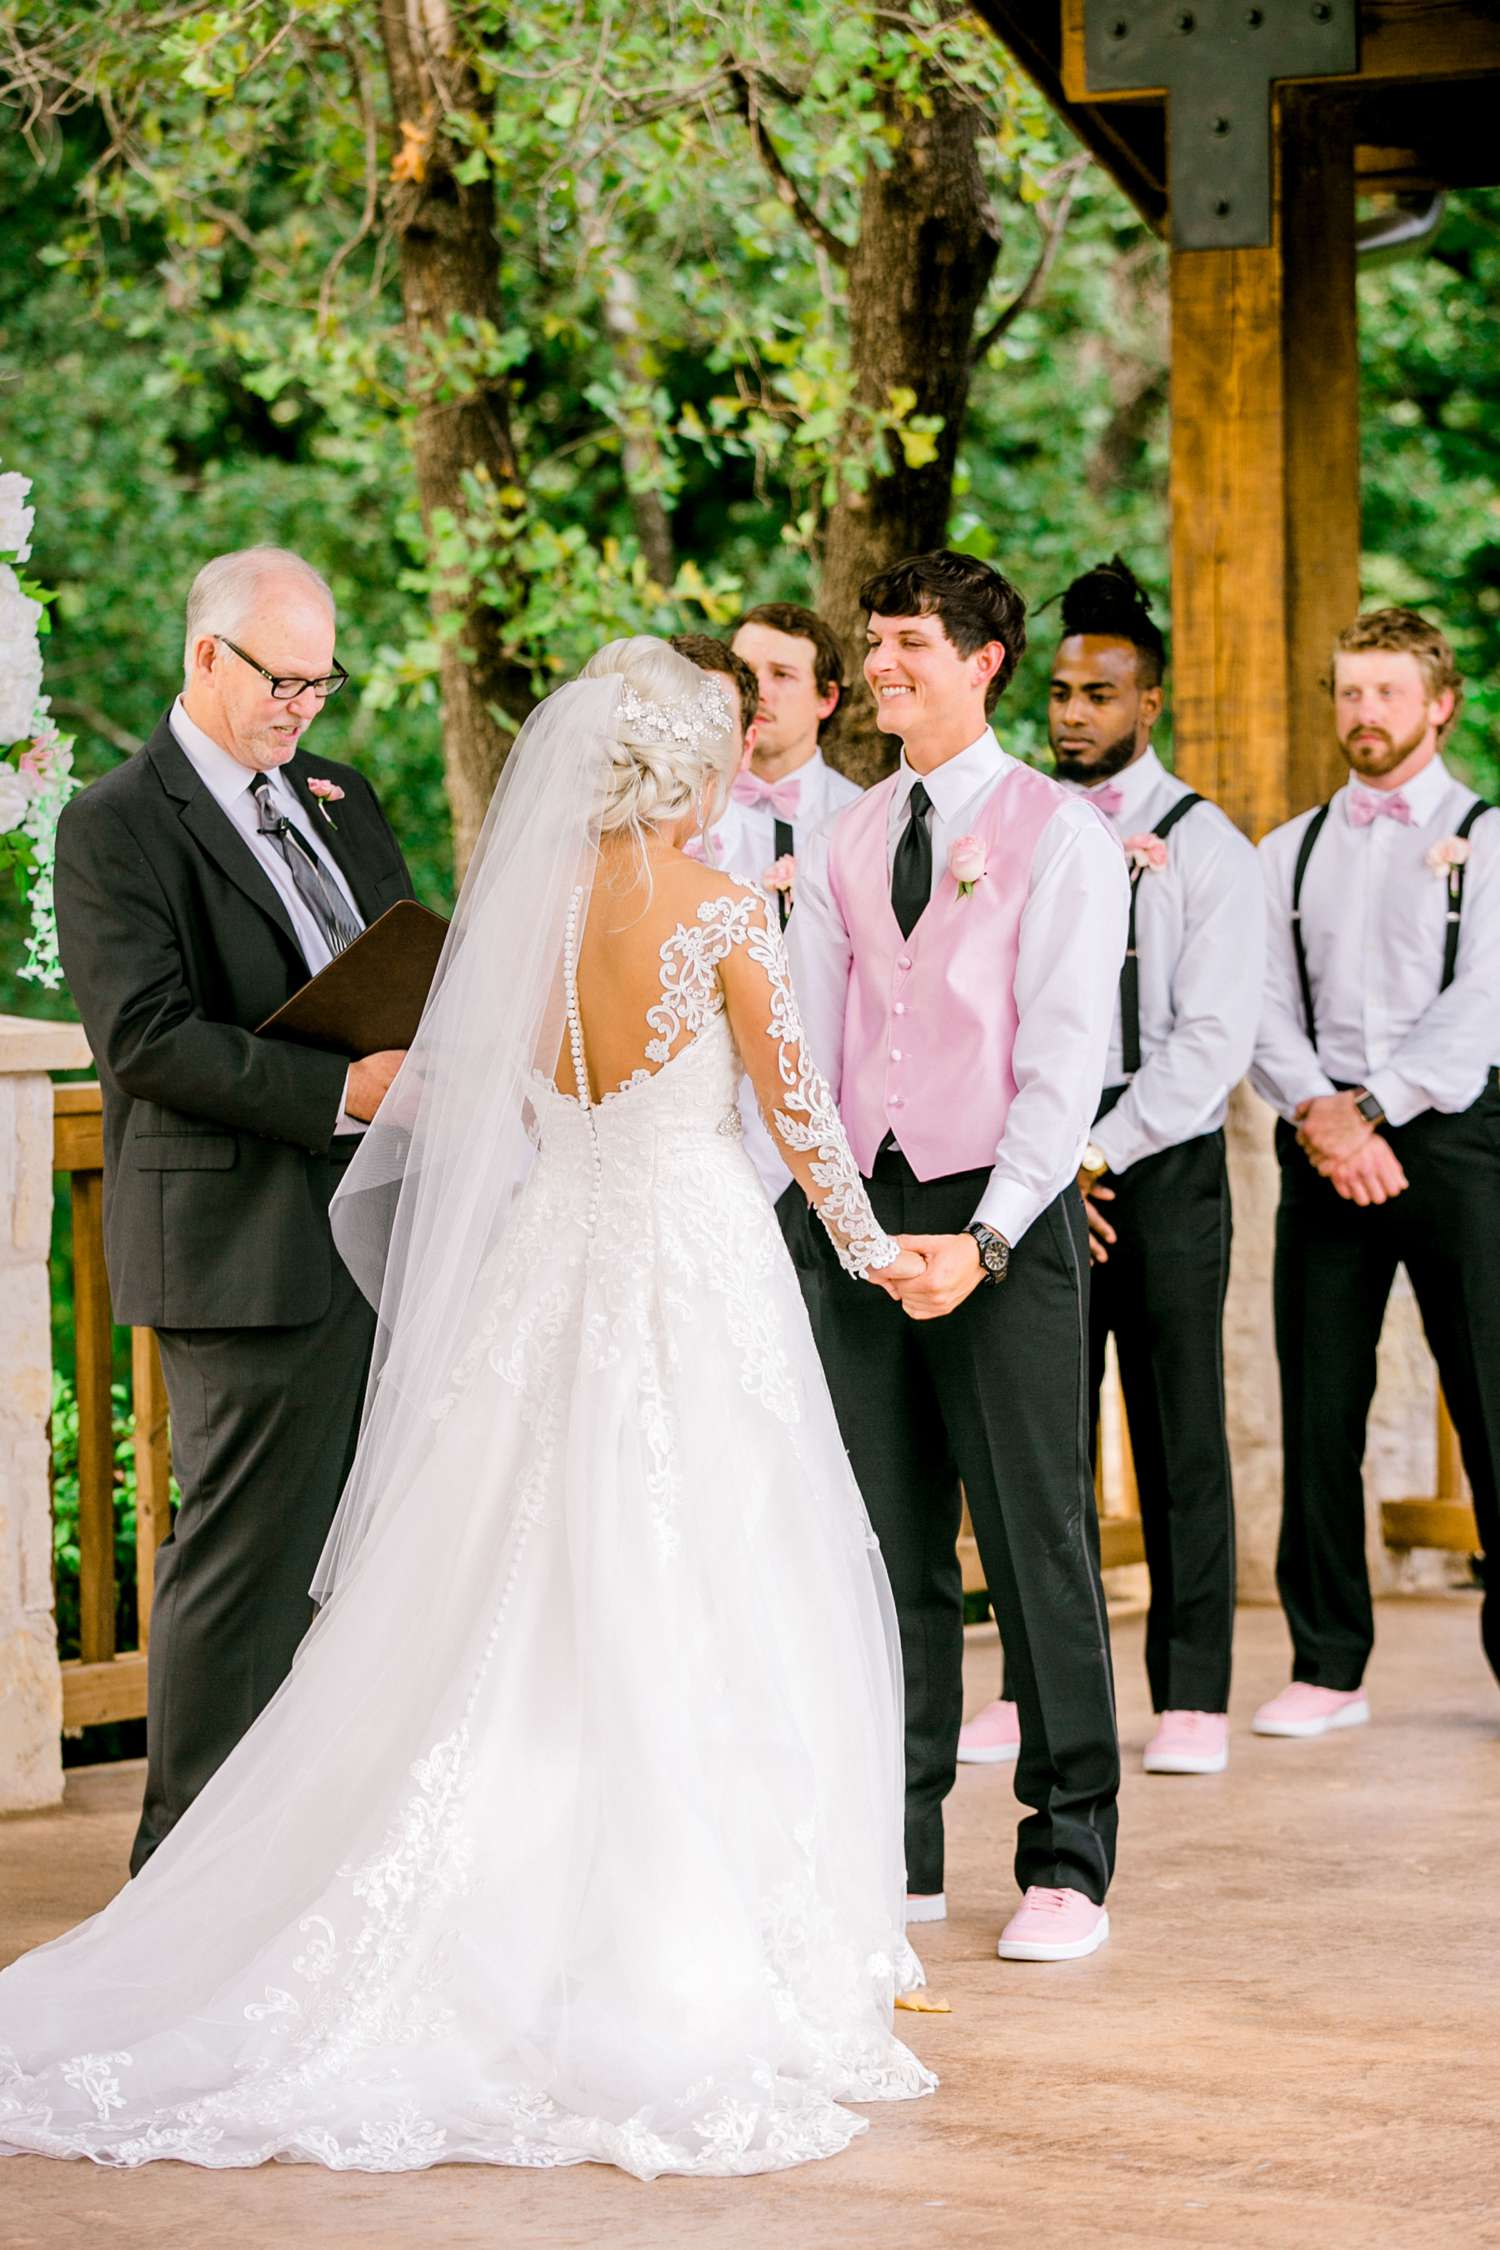 JESSICA+LYLE+NEEL+THE_SPRINGS_EVENTS_WEDDING_OKLAHOMA_ALLEEJ_PHOTOGRAPHER_0057.jpg